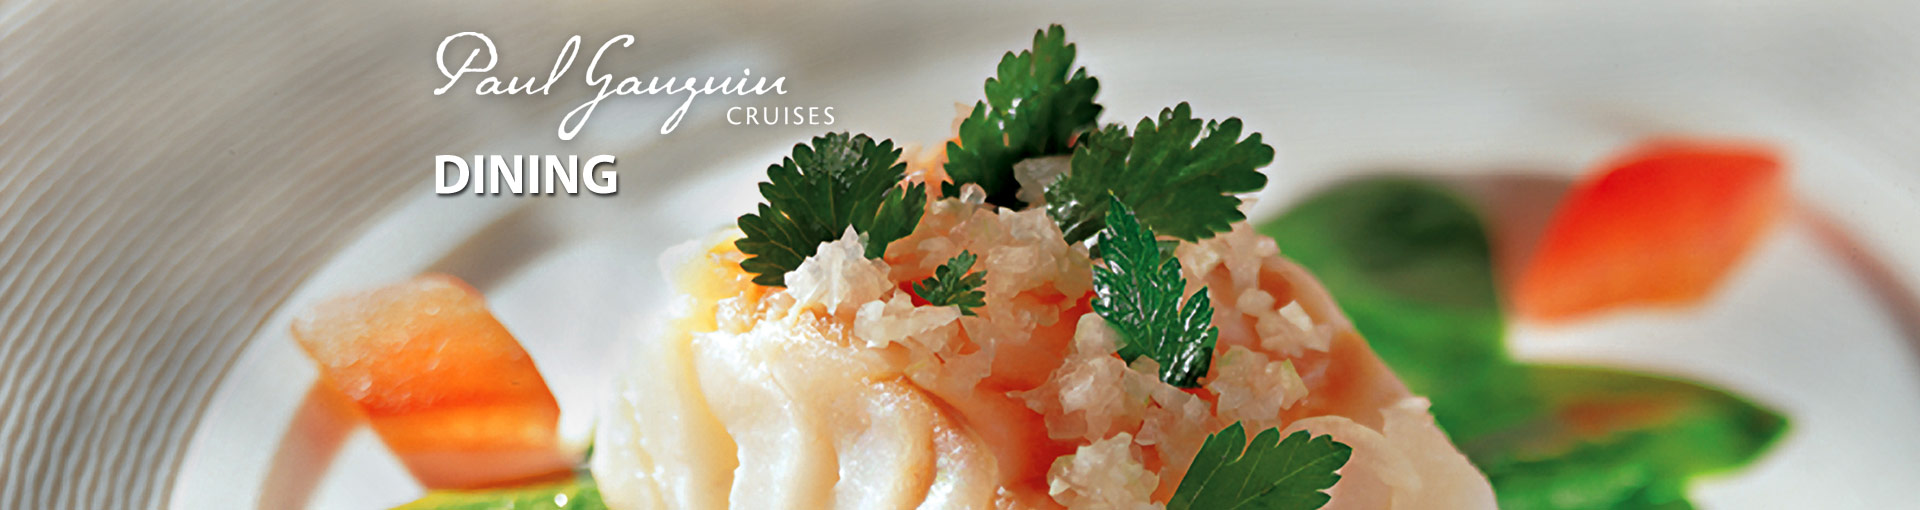 Paul Gauguin Cruises Dining